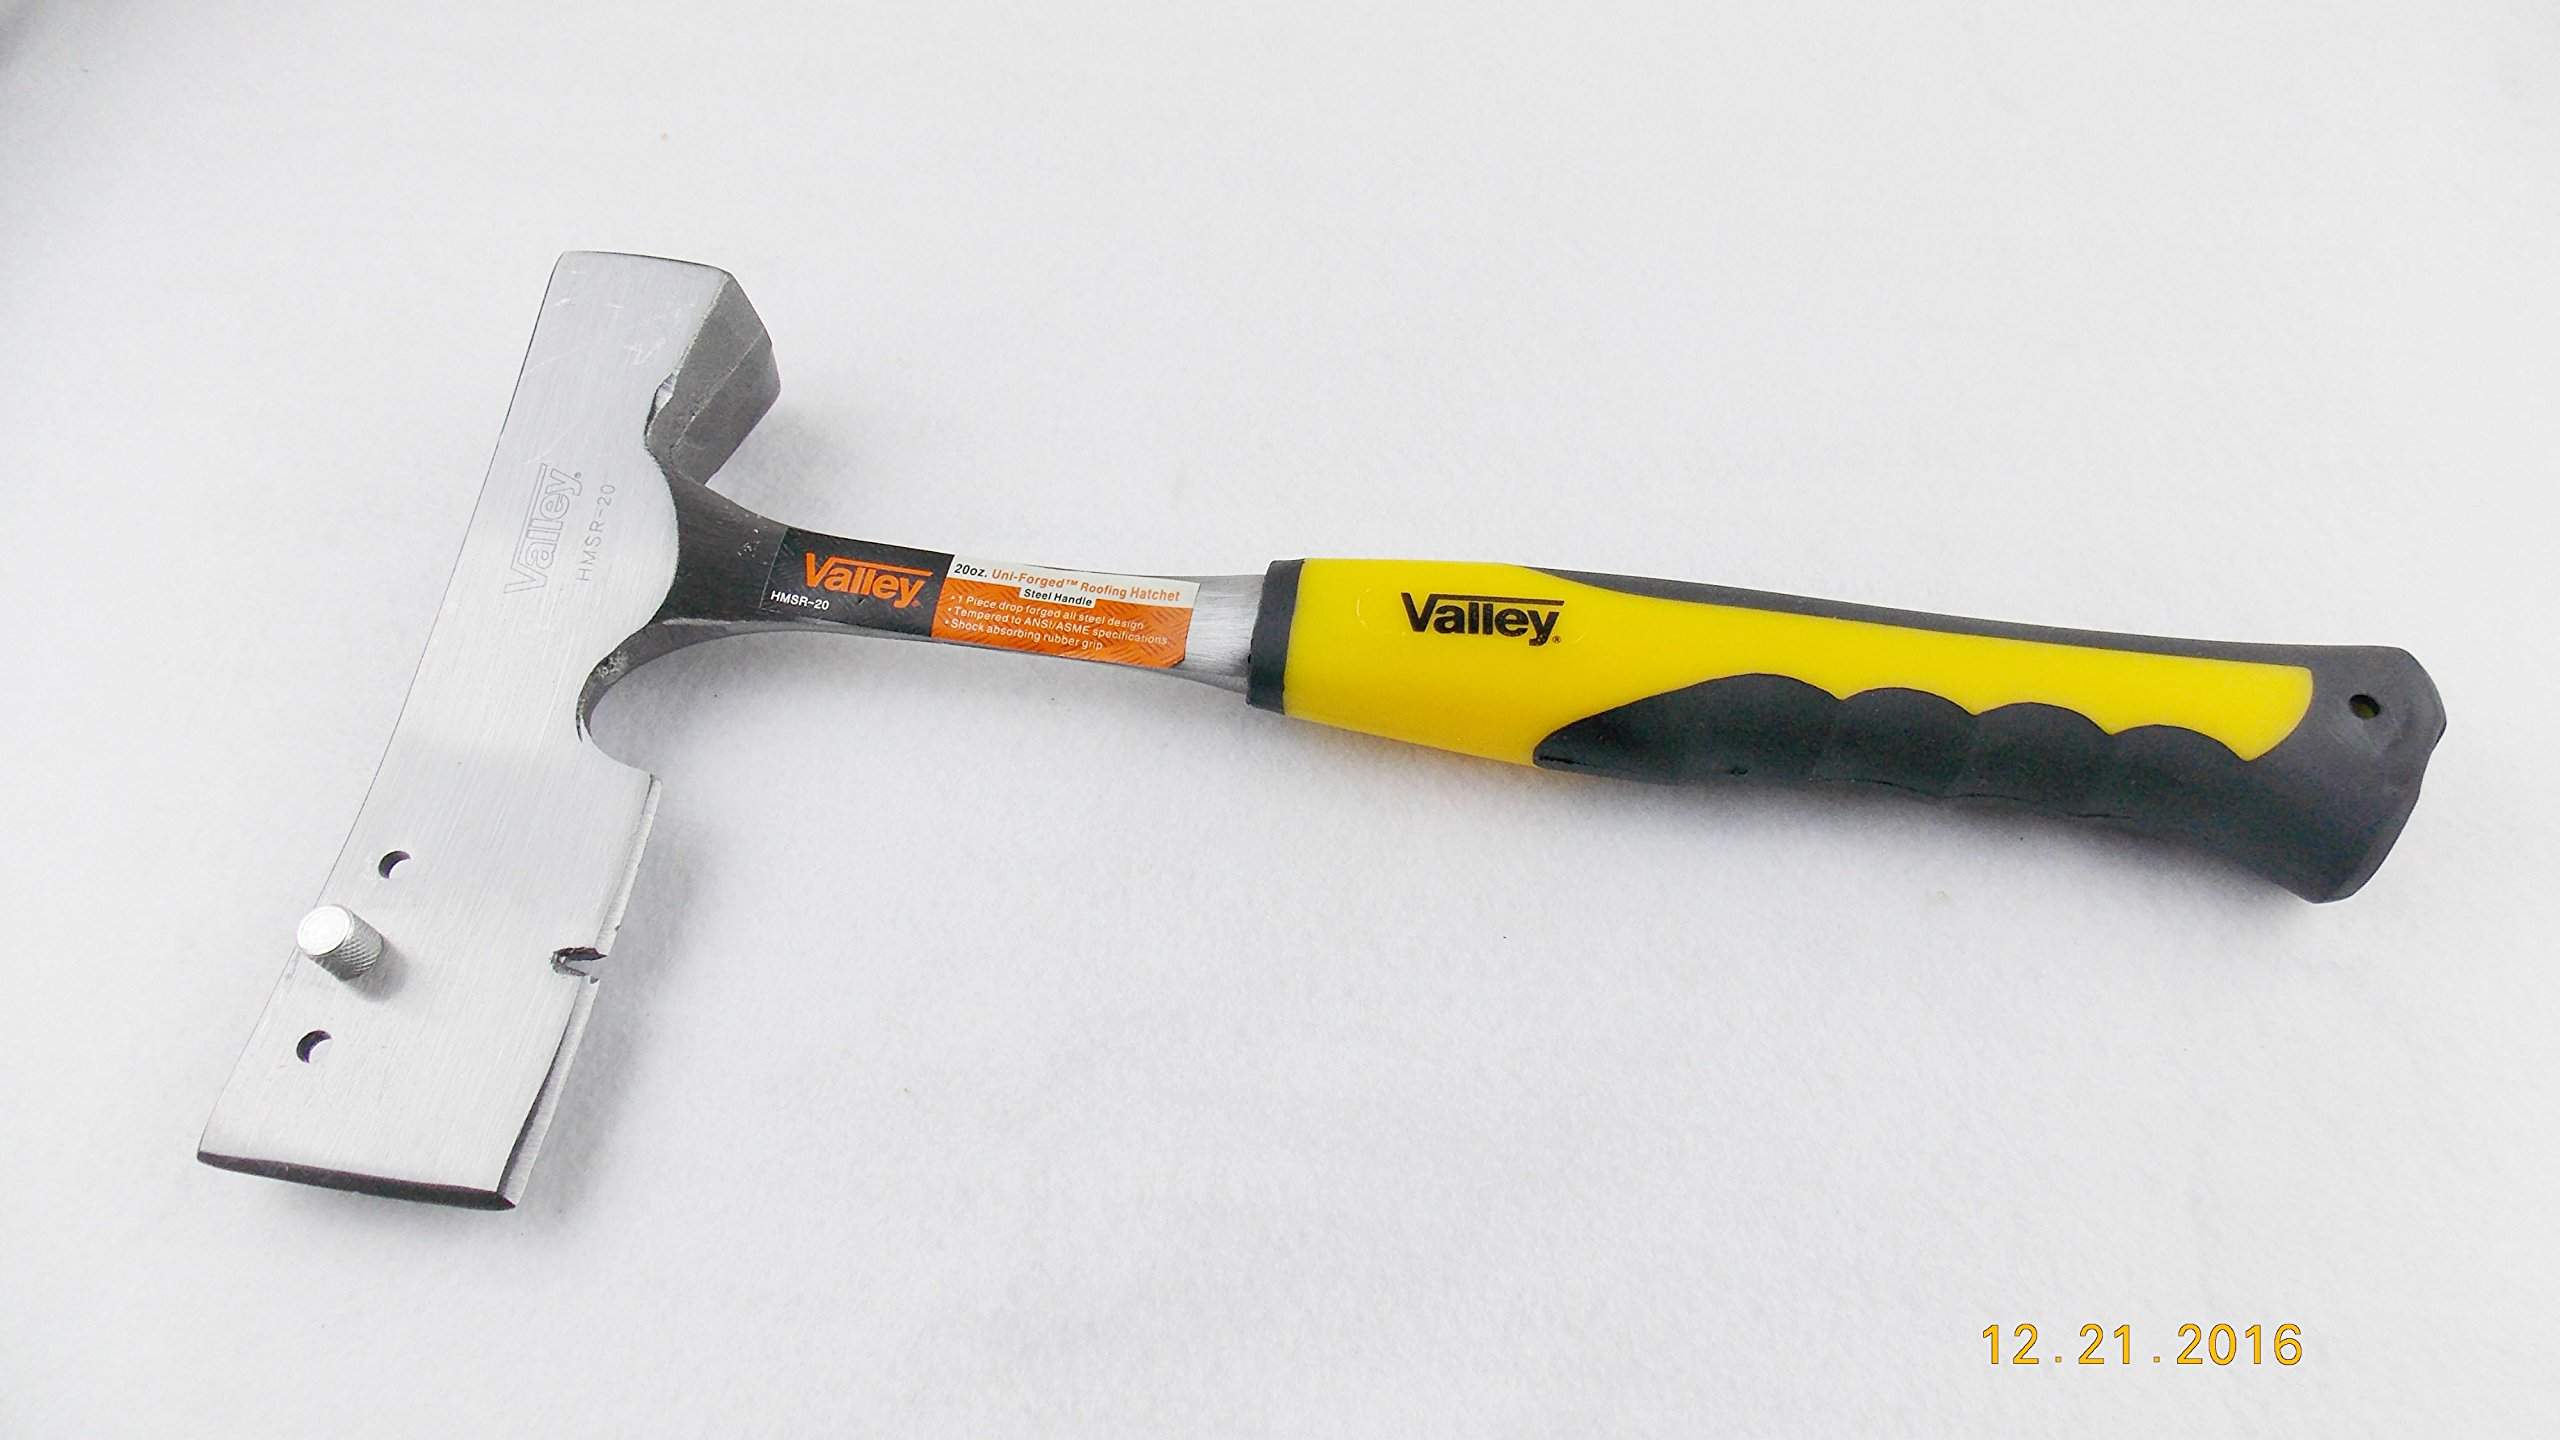 All-Steel Shingling Hammer ( Roofing Hammer) by Forgecraft USA or Valley